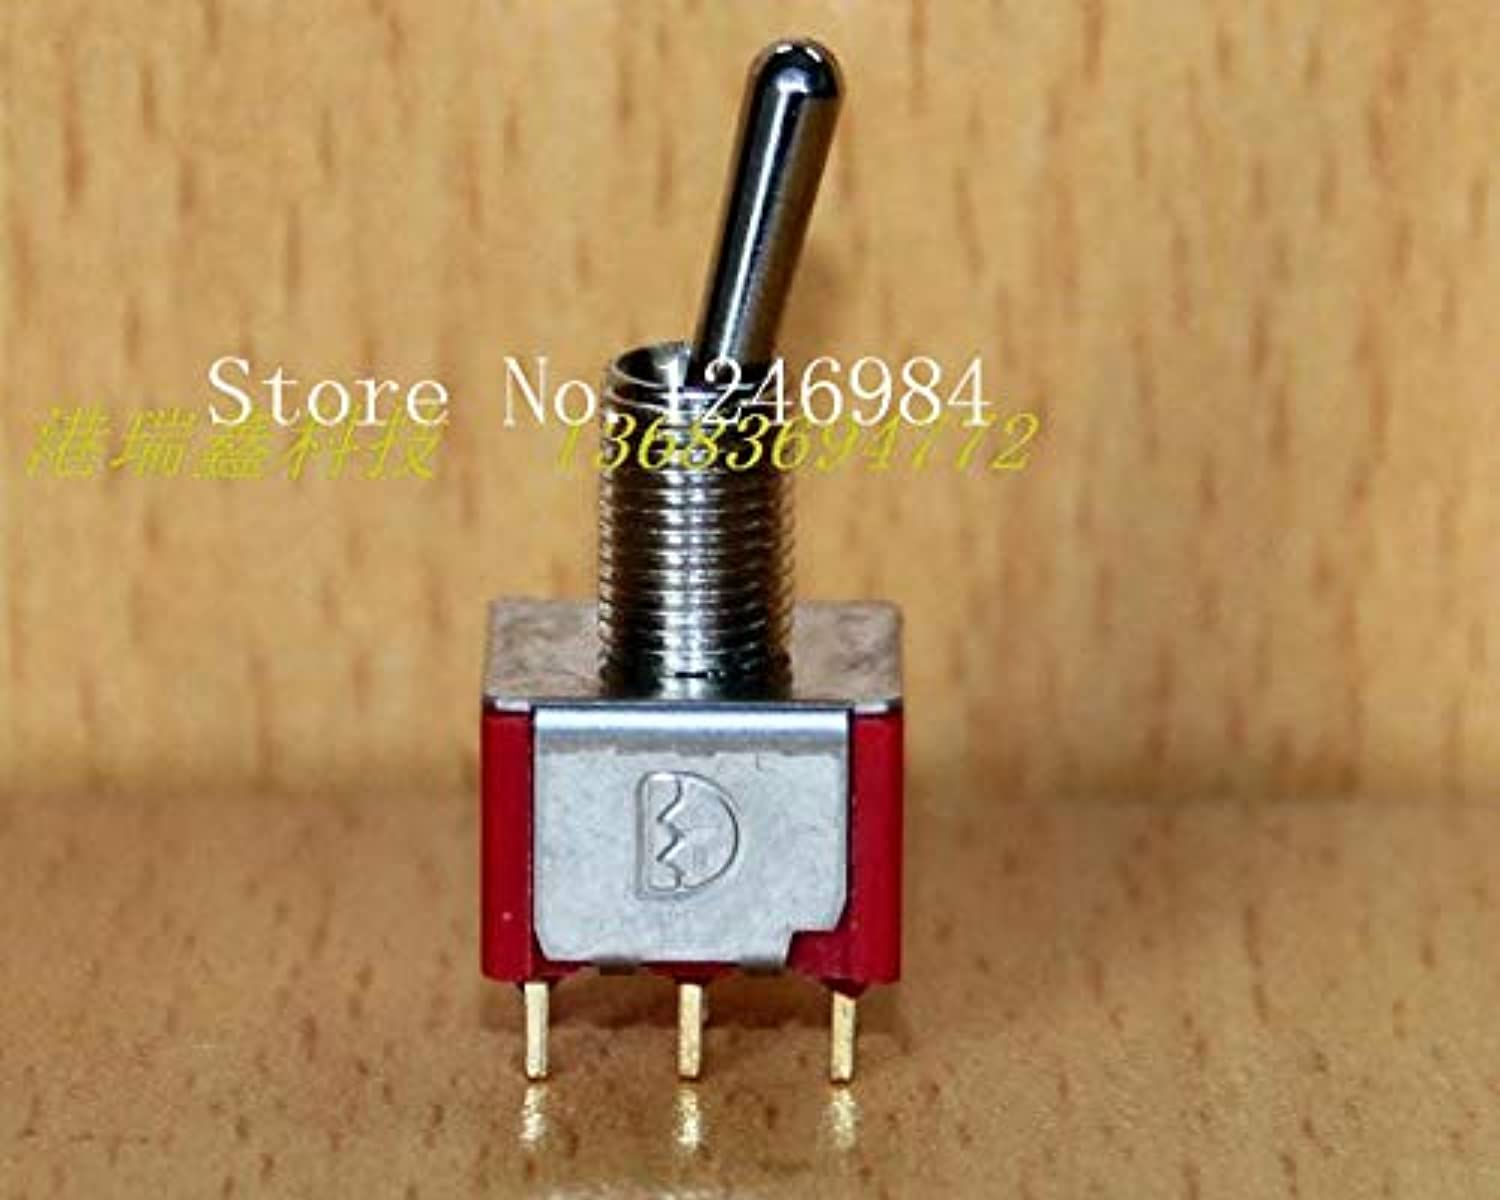 [SA]T8011 Dual gold-Plated six Foot Two tranches M6.35 Small Toggle Switch Toggle Switch Rocker Taiwan Deli Wei Q1-50pcs lot